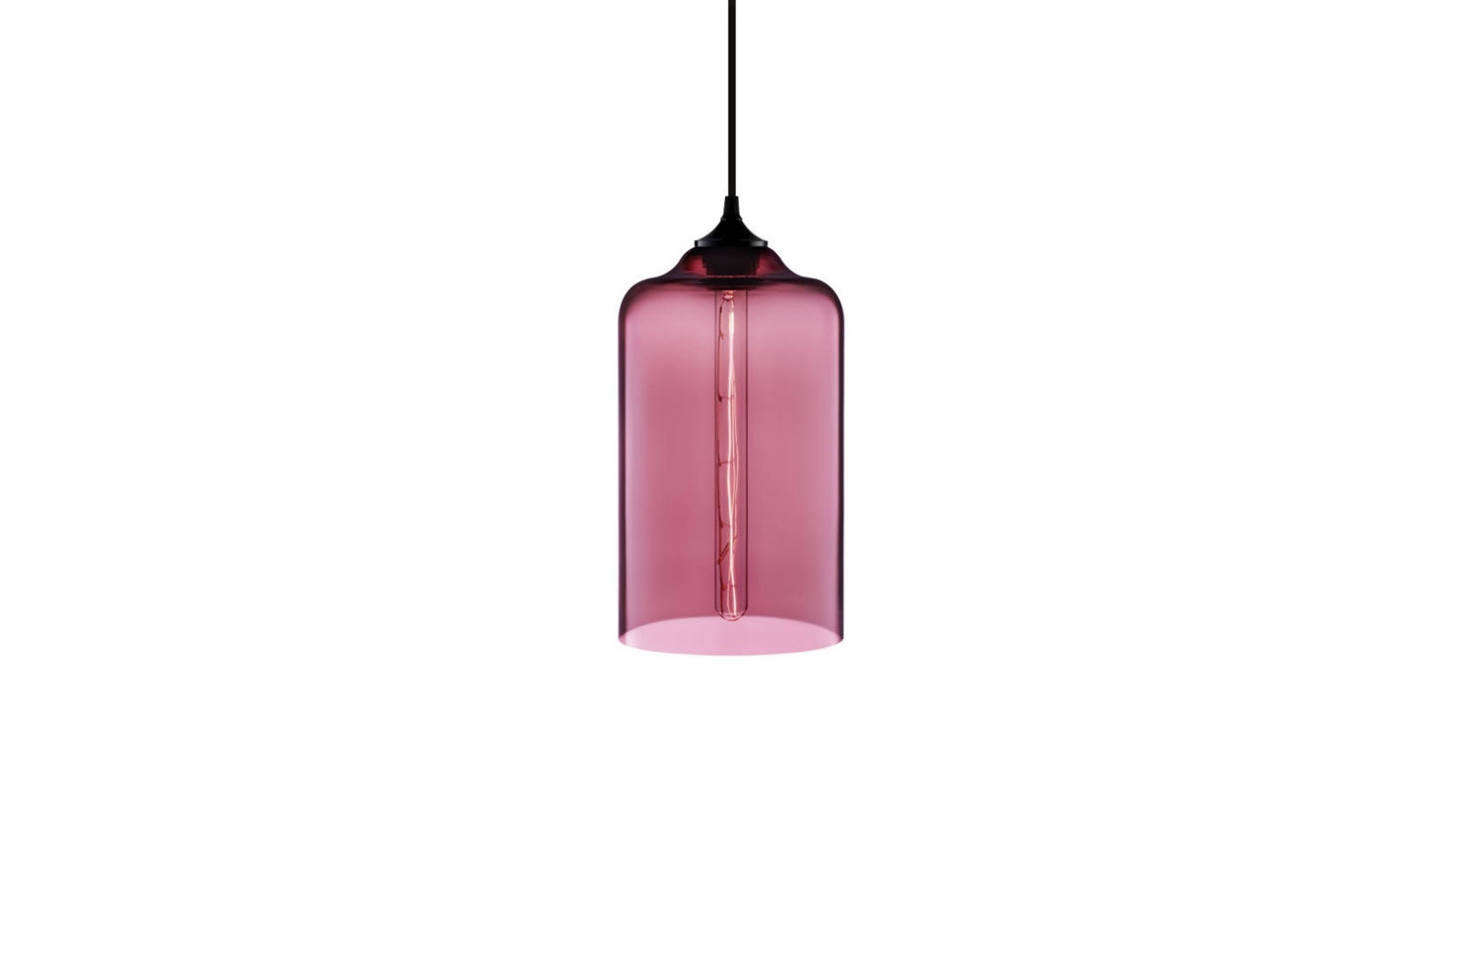 Niche's Bella Pendant designed by Jeremy Pyles comes in seven colors, including rose (shown); $800 from Niche.